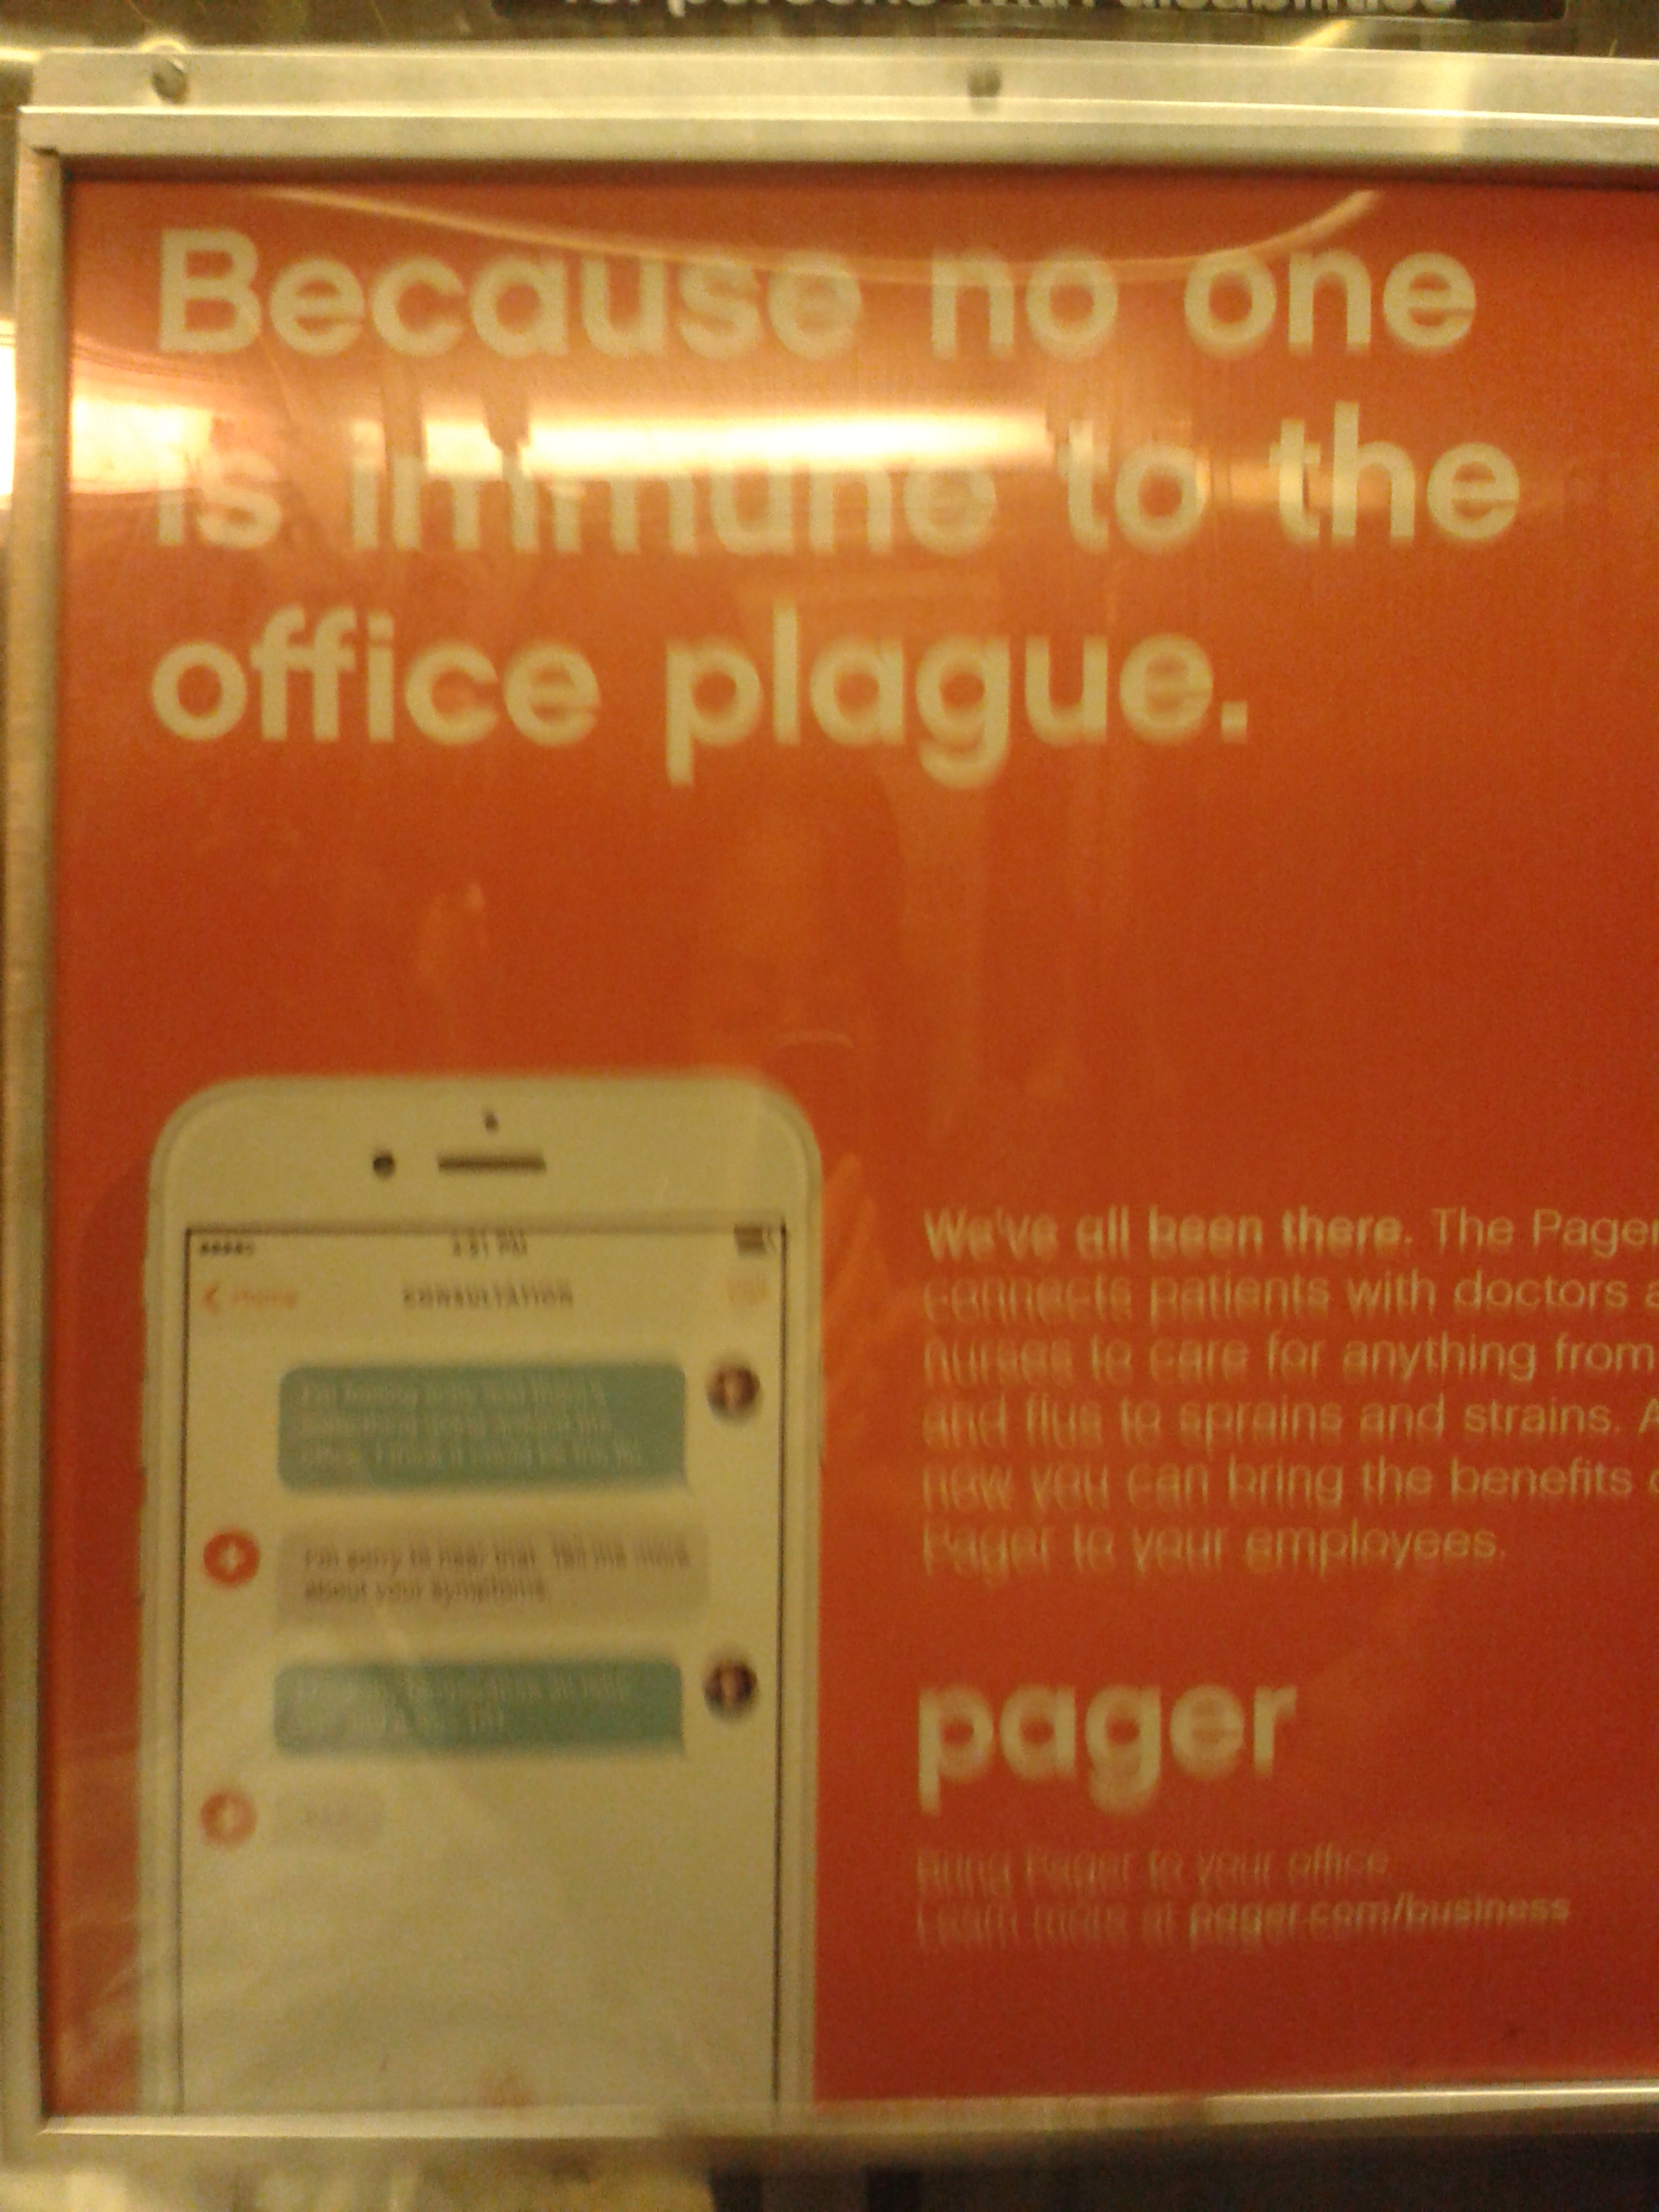 New York subway ad for Pager, close-up